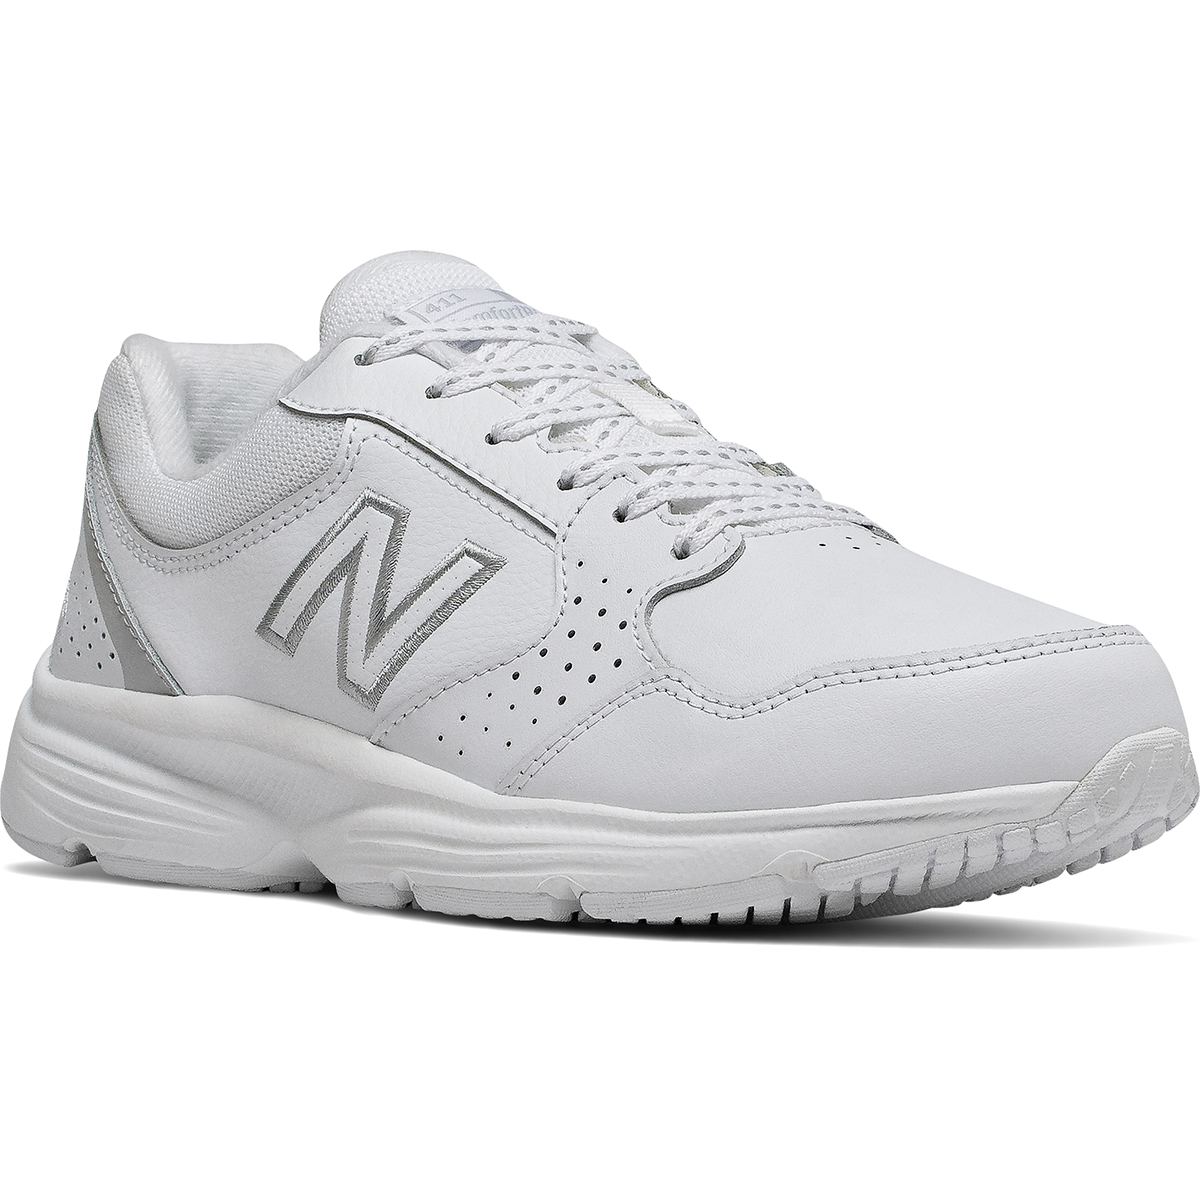 New Balance Women's 411 Walking Shoes, Wide - White, 9.5